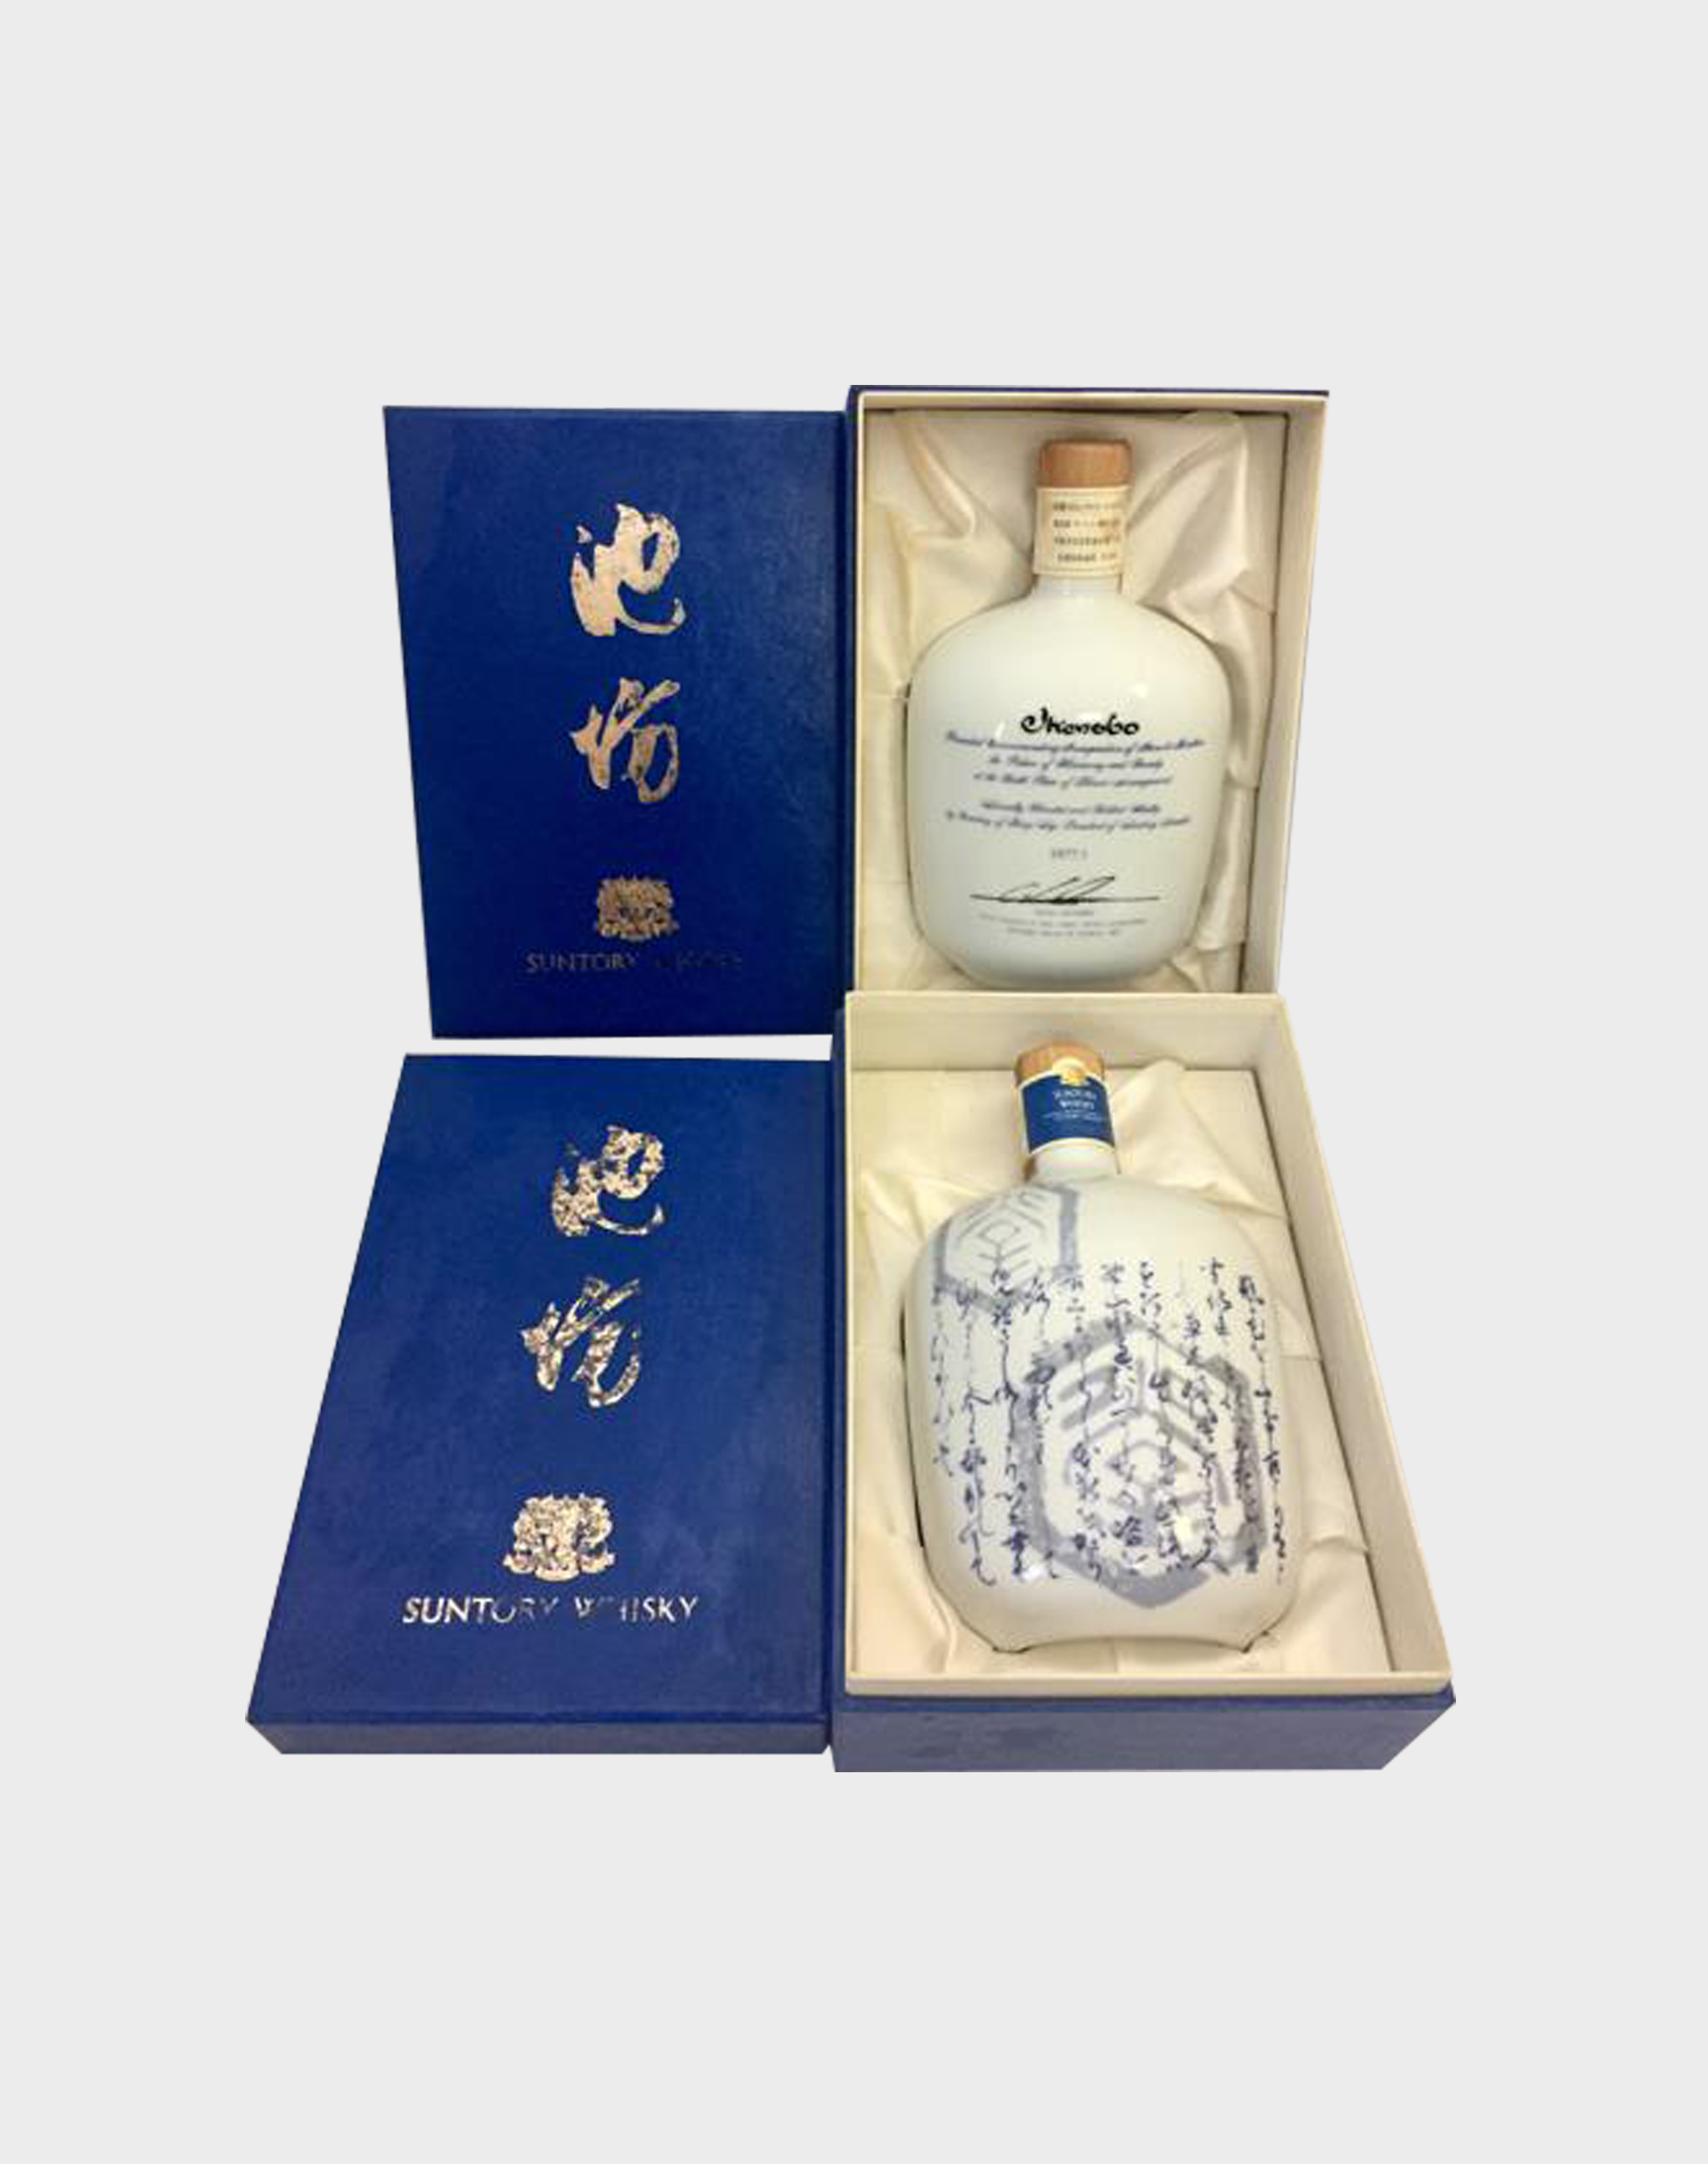 Suntory Ikenobo Ceramic Whisky Set